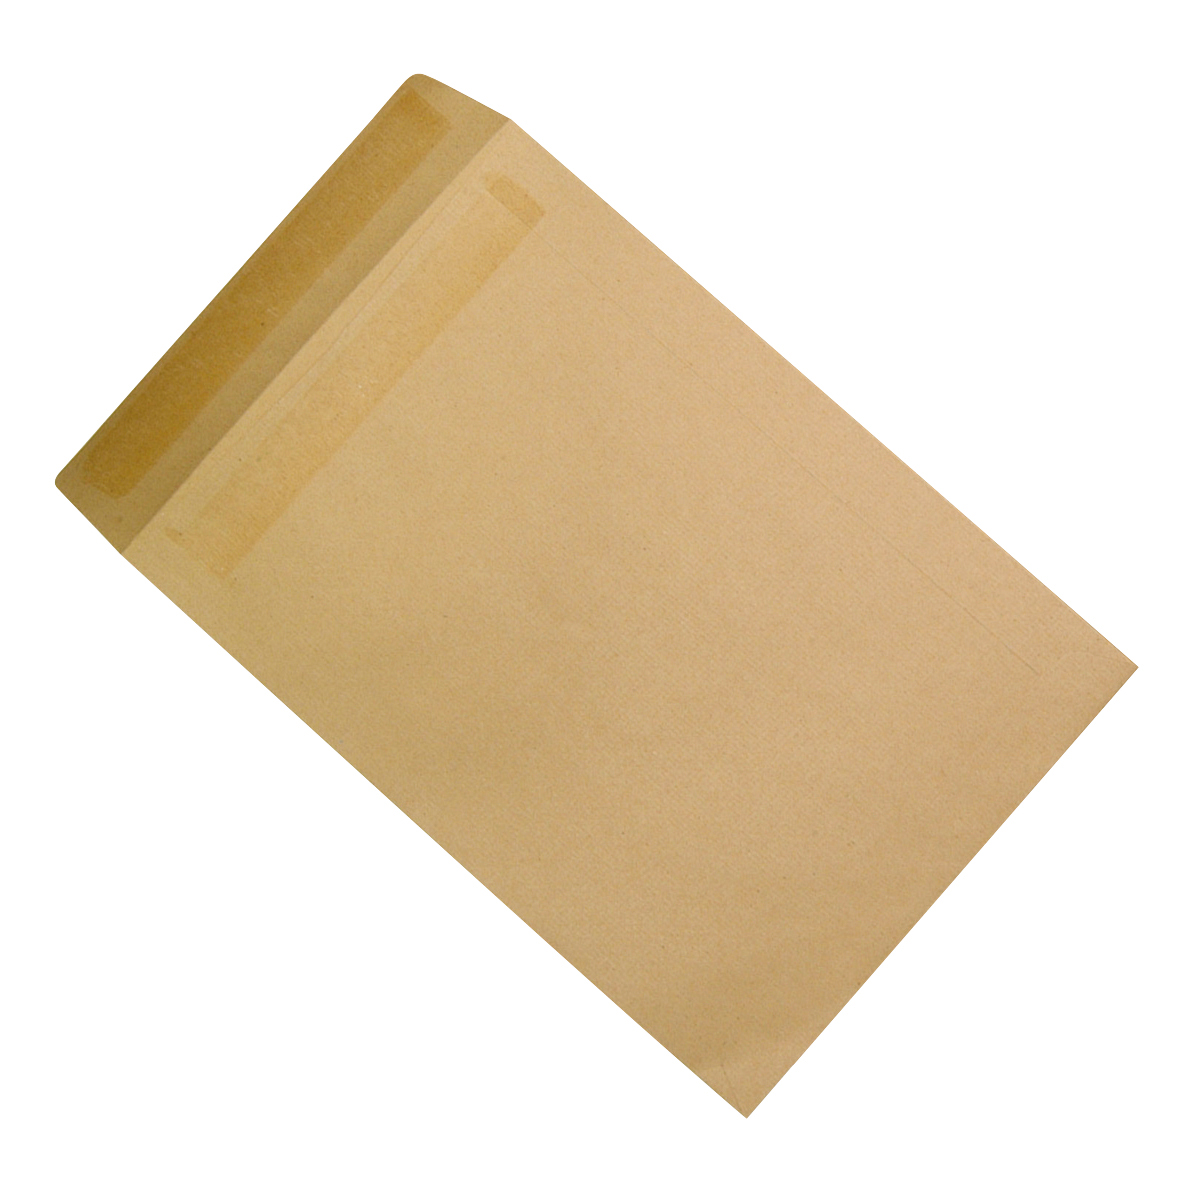 5 Star Office Envelopes Recycled 406x305mm Pocket Self Seal 90gsm Manilla [Pack 250]